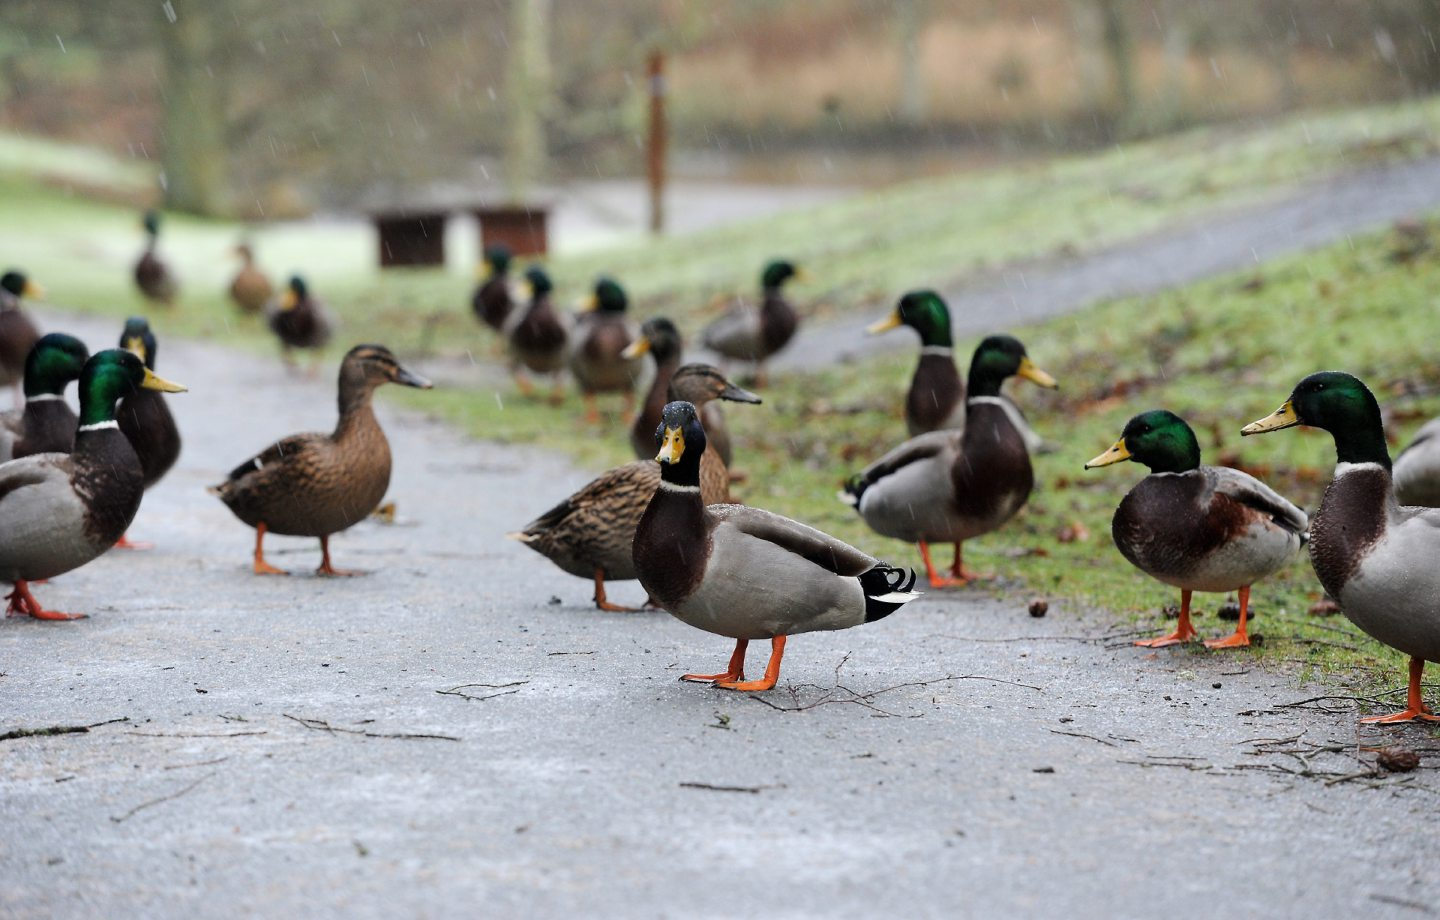 Haddo's  ducks that inhabit the park's pond.  18/12/11  Picture by Richard Frew.